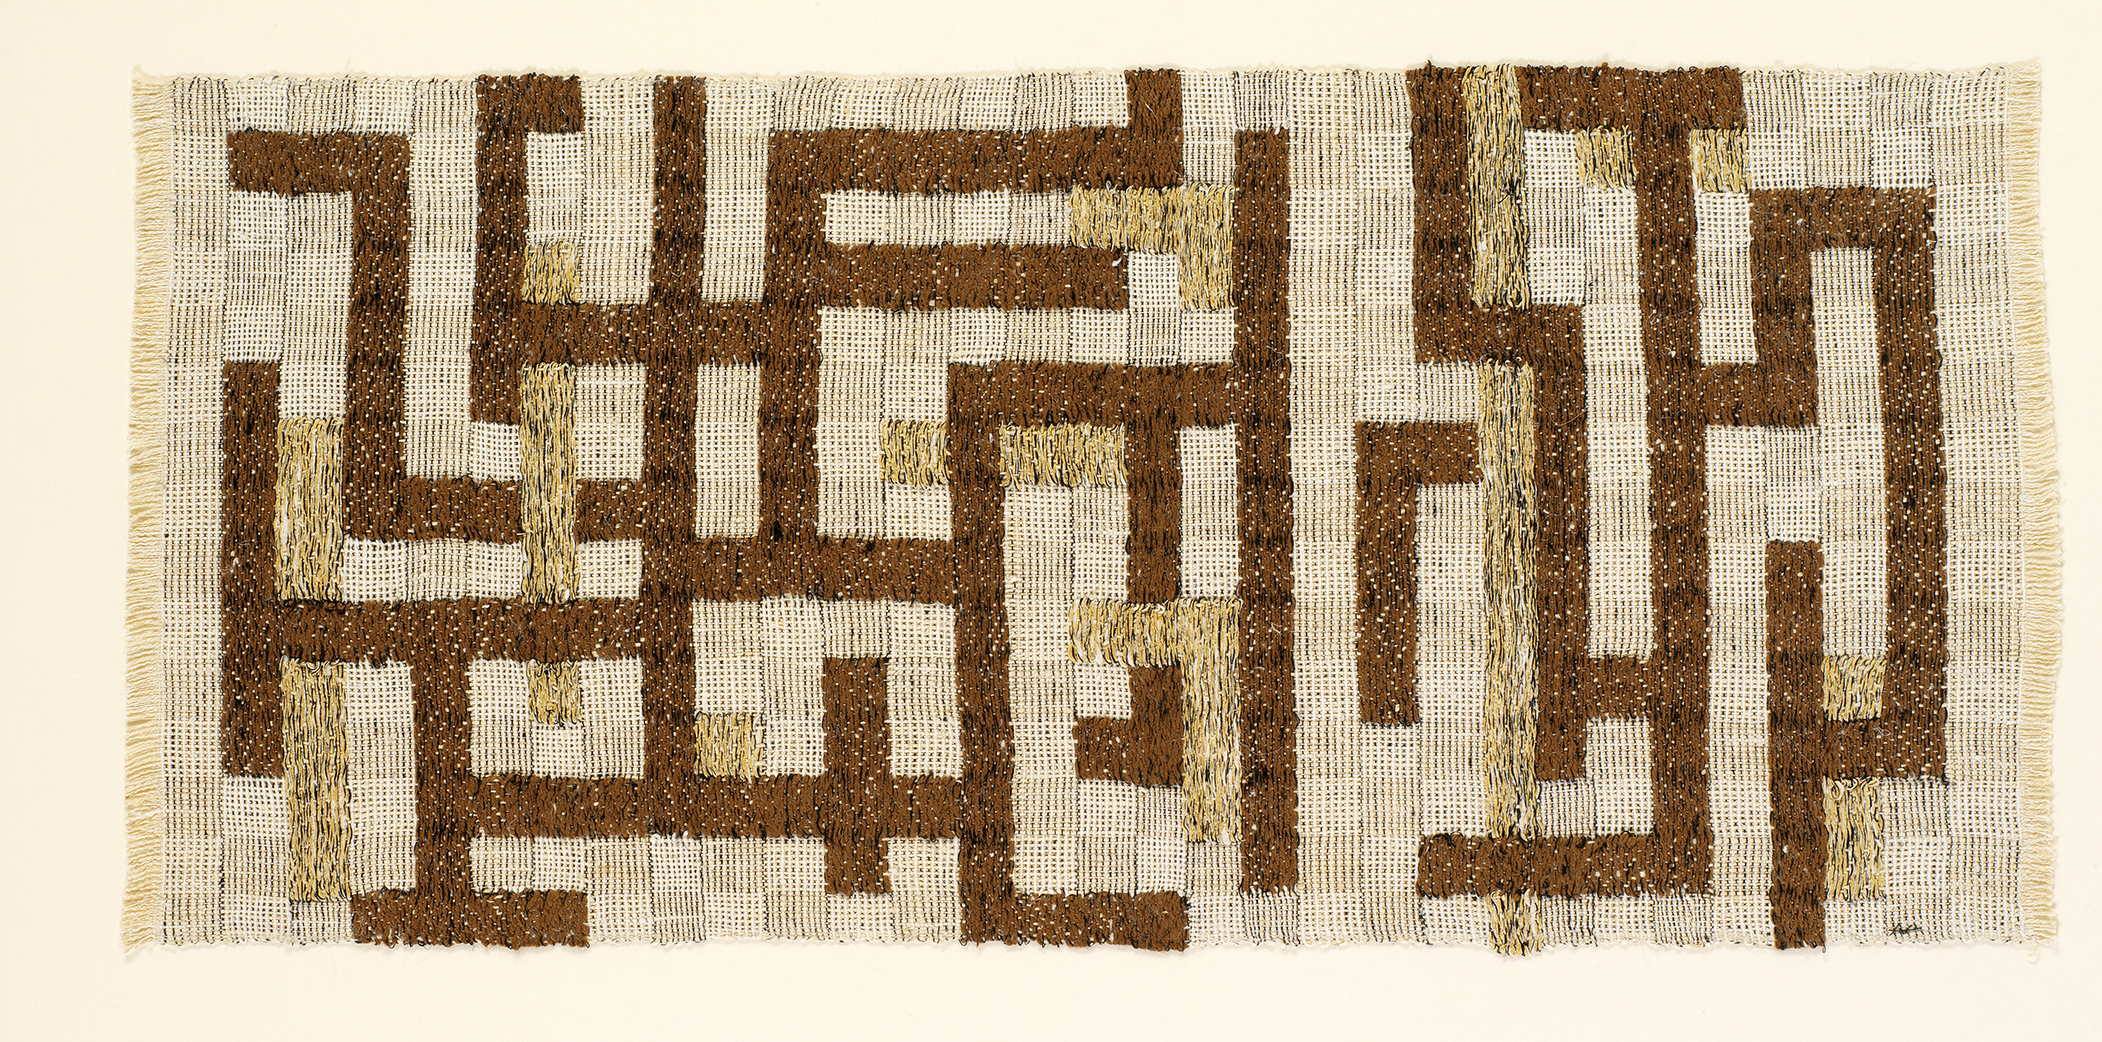 """Anni Albers, """"Two,"""" 1952, Linen, cotton, rayon, 19 x 40 in., © The Josef and Anni Albers Foundation / Artists Rights Society (ARS), New York 2019"""